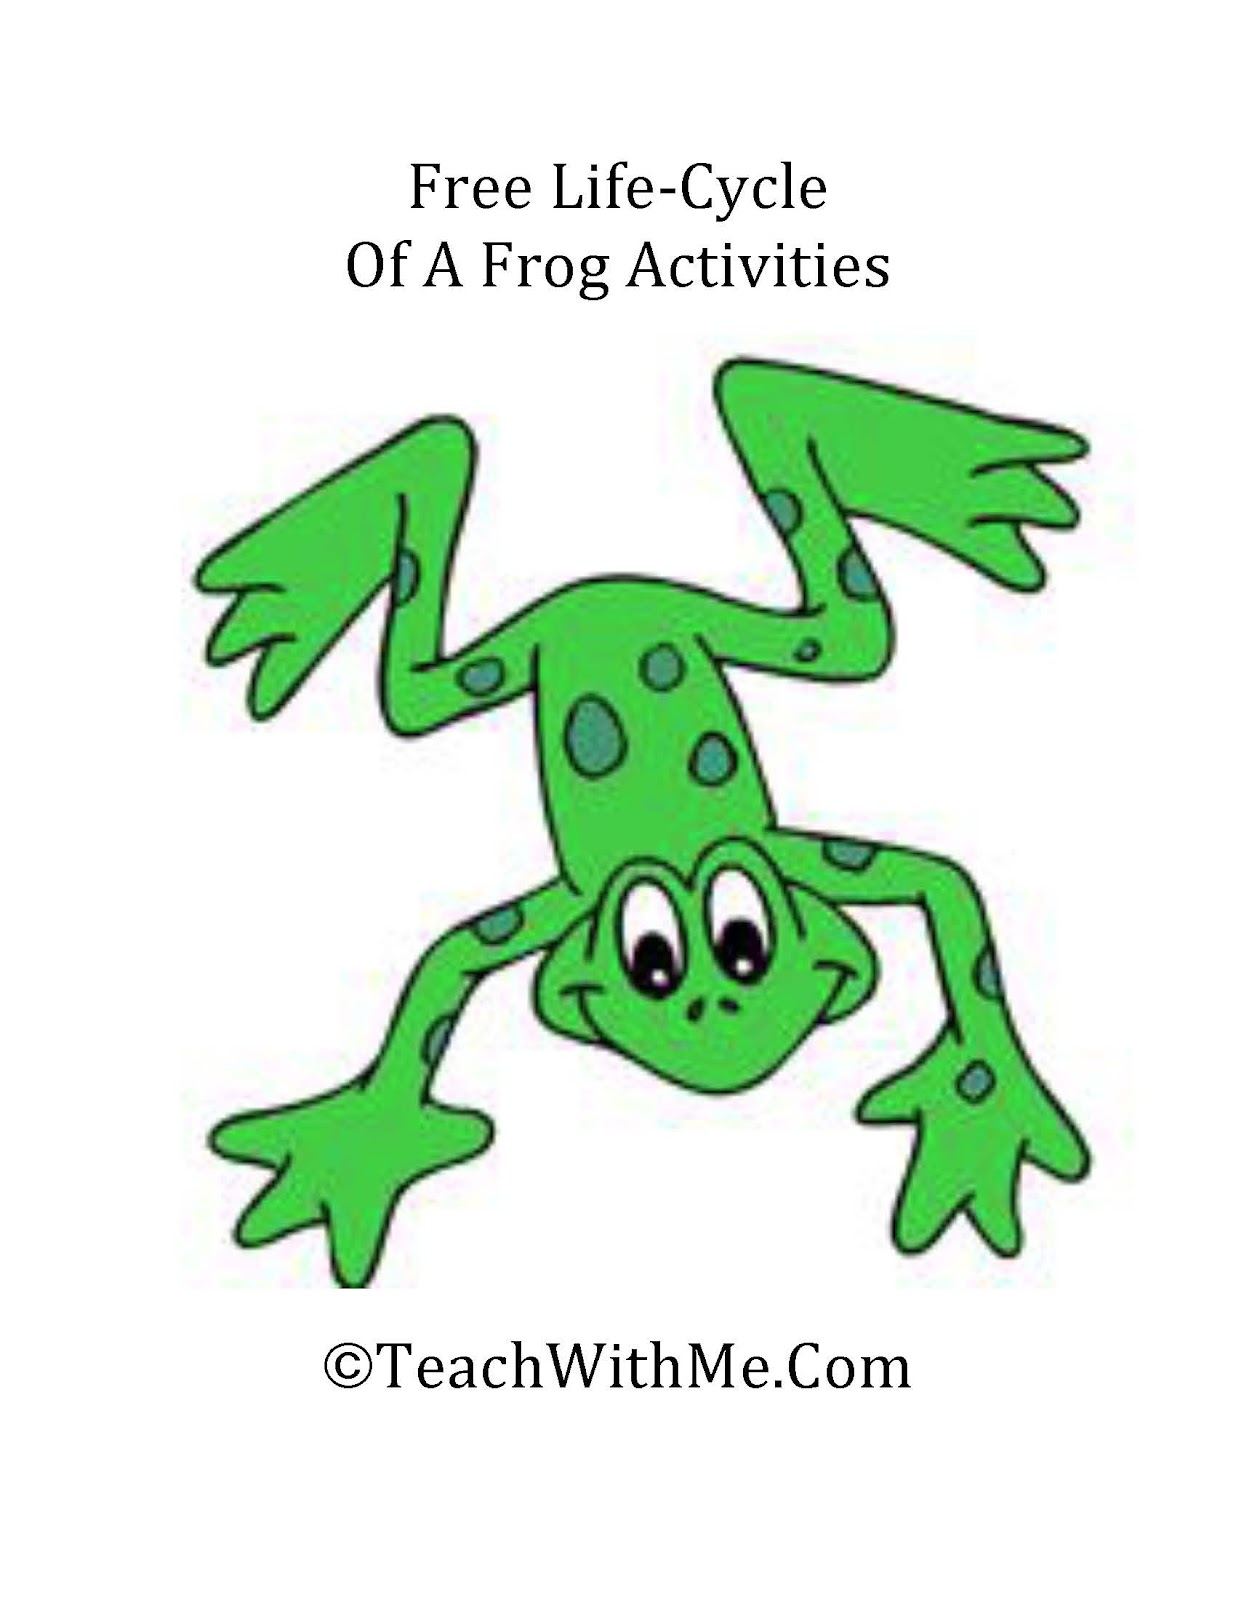 The Life Cycle Of A Frog Activities - Classroom Freebies - photo#17